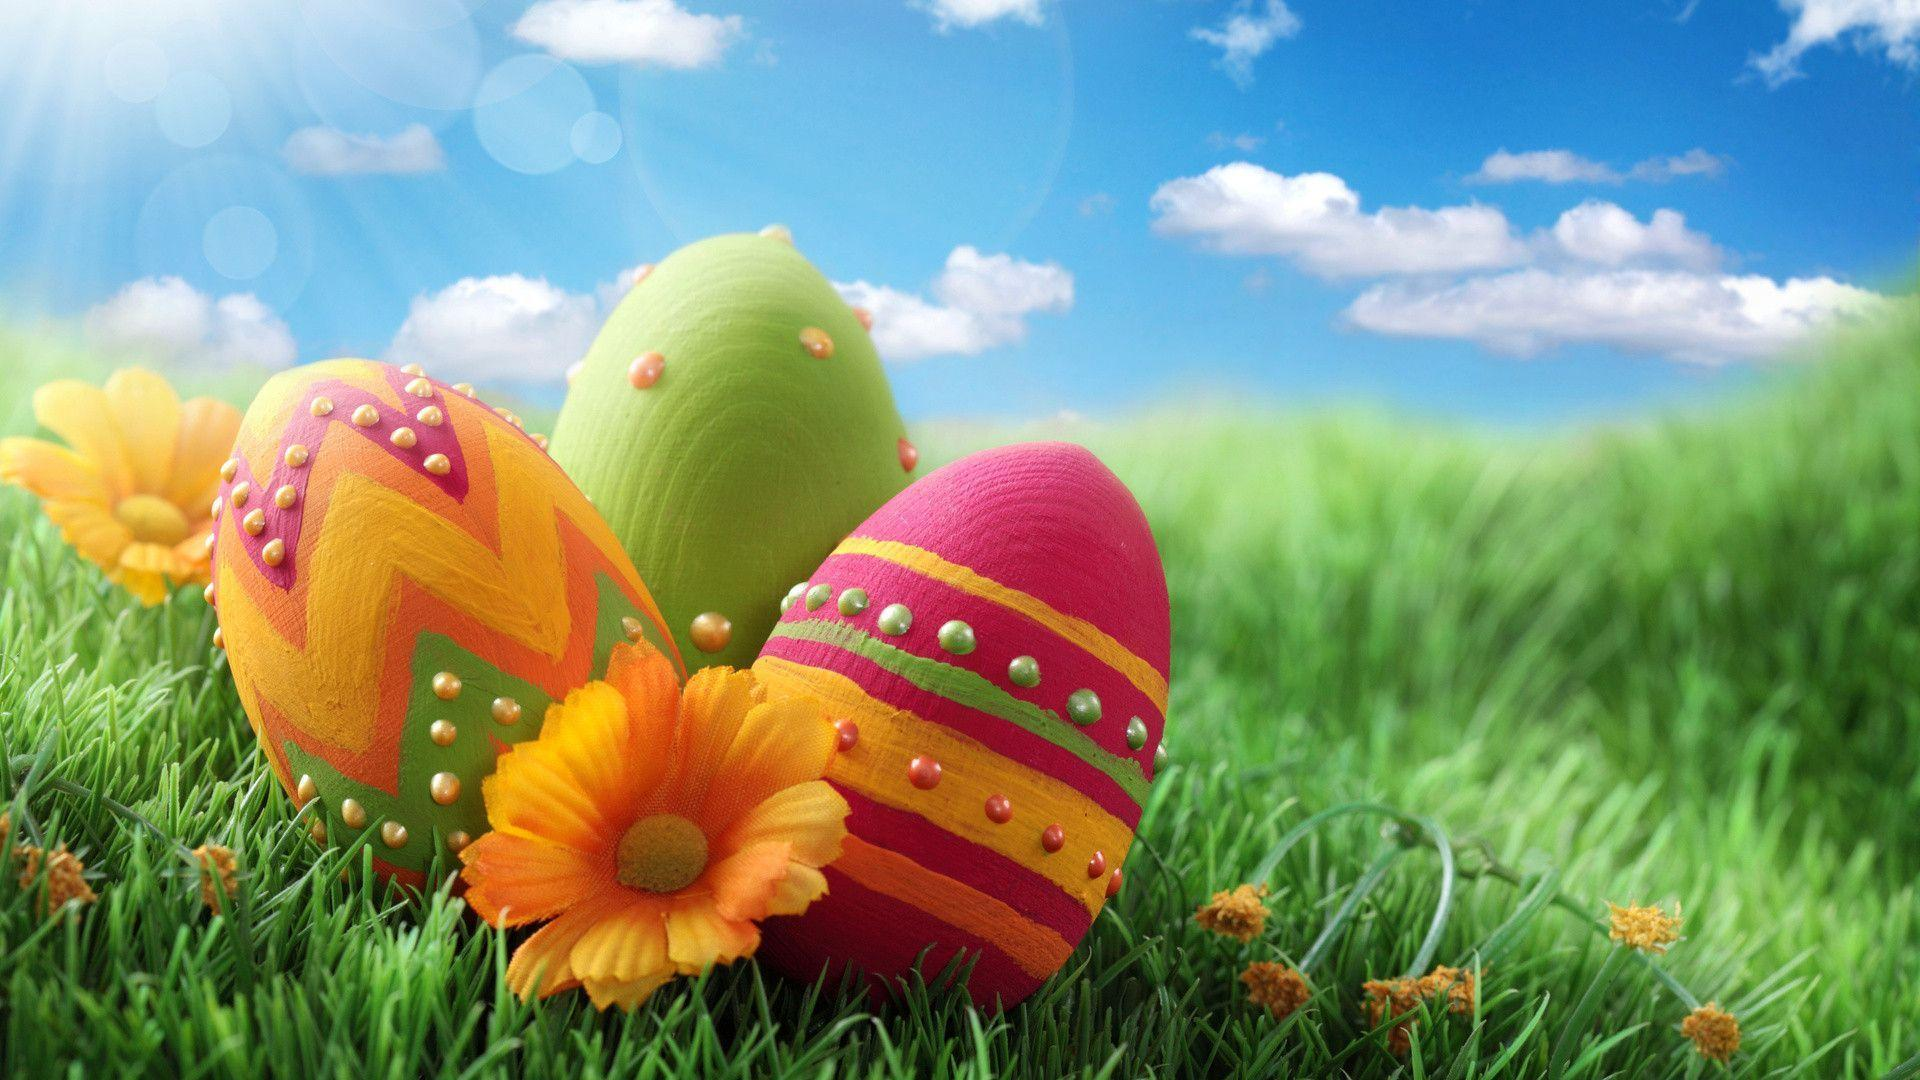 Easter wallpaper, wallpaper, Easter wallpapers hd wallpapers